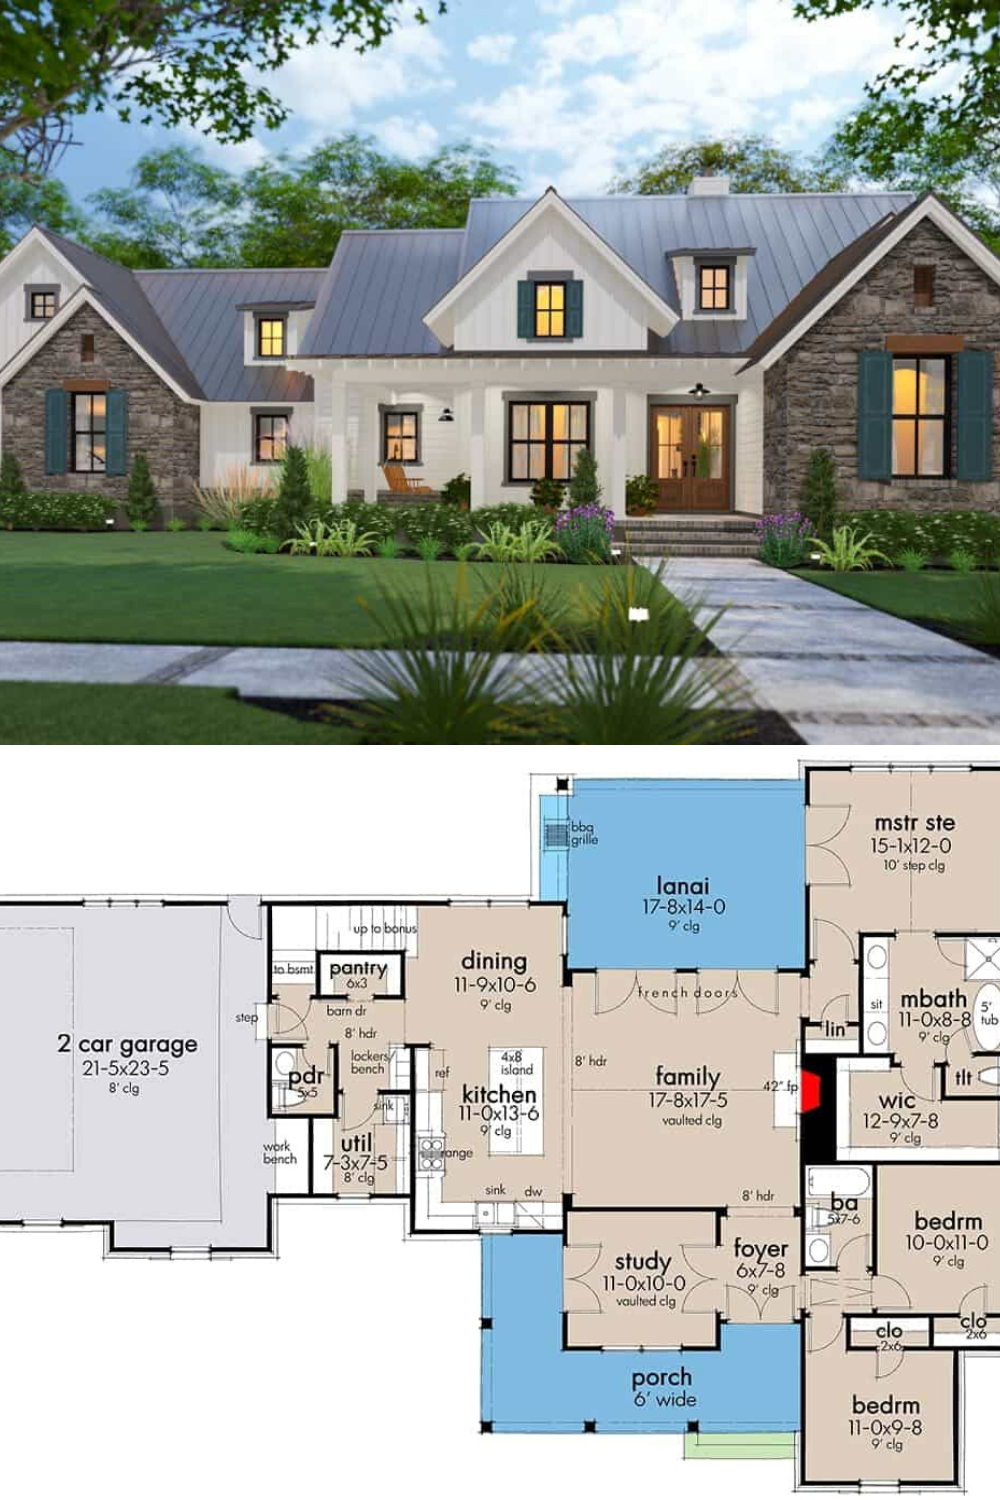 Two Story 4 Bedroom New American Farmhouse Floor Plan In 2020 Affordable House Plans House Plans Farmhouse Farmhouse Floor Plans